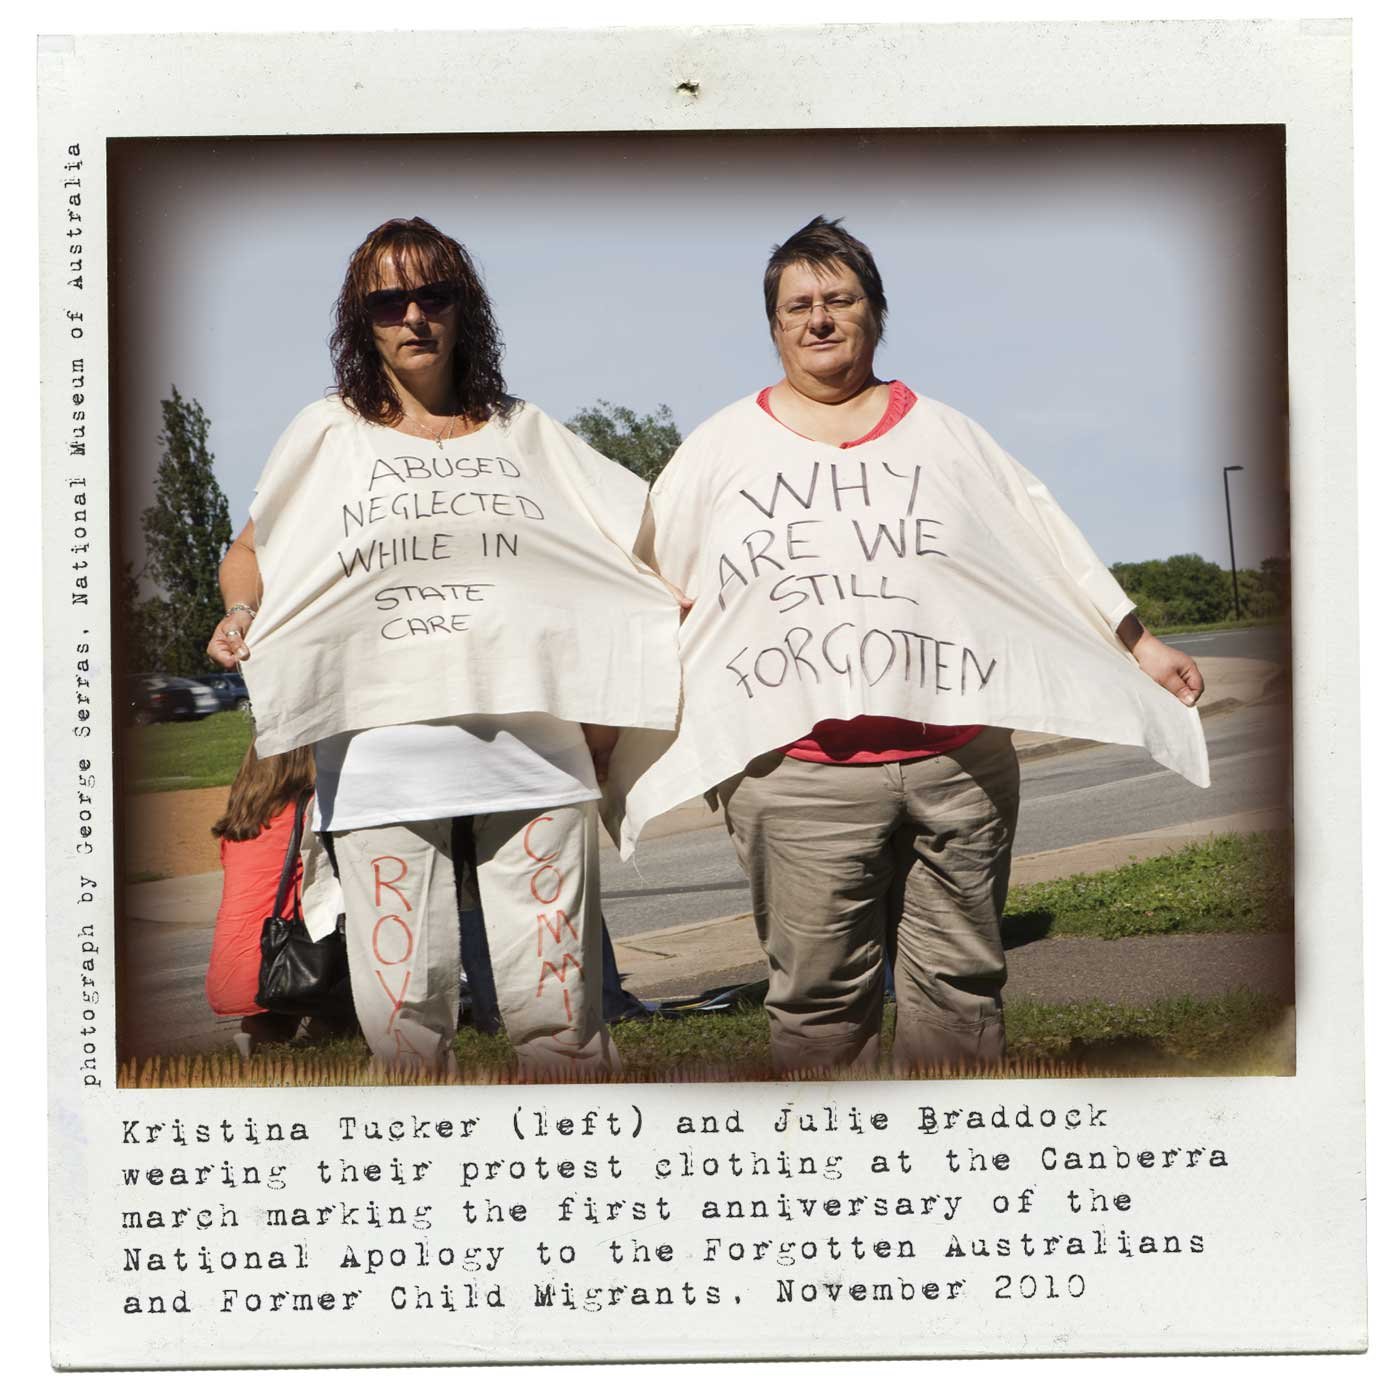 A colour Polaroid photograph showing two women holding out white shirts with protest slogans written in black felt pen. The woman on the right's shirt reads 'ABUSED NEGLECTED WHILE IN STATE CARE' and the words 'ROYAL COMMISSION' are partially visible on her trousers. The woman on the right's shirt reads 'WHY ARE WE STILL FORGOTTEN'. Typewritten text under the photos reads: 'Kristina Tucker (left) and Julie Braddock wearing their protest clothing at the Canberra march marking the first anniversary of the National Apology to the Forgotten Australians and Former Child Migrants, November 2010'. 'photograph by George Serras, National Museum of Australia' is printed on the left.